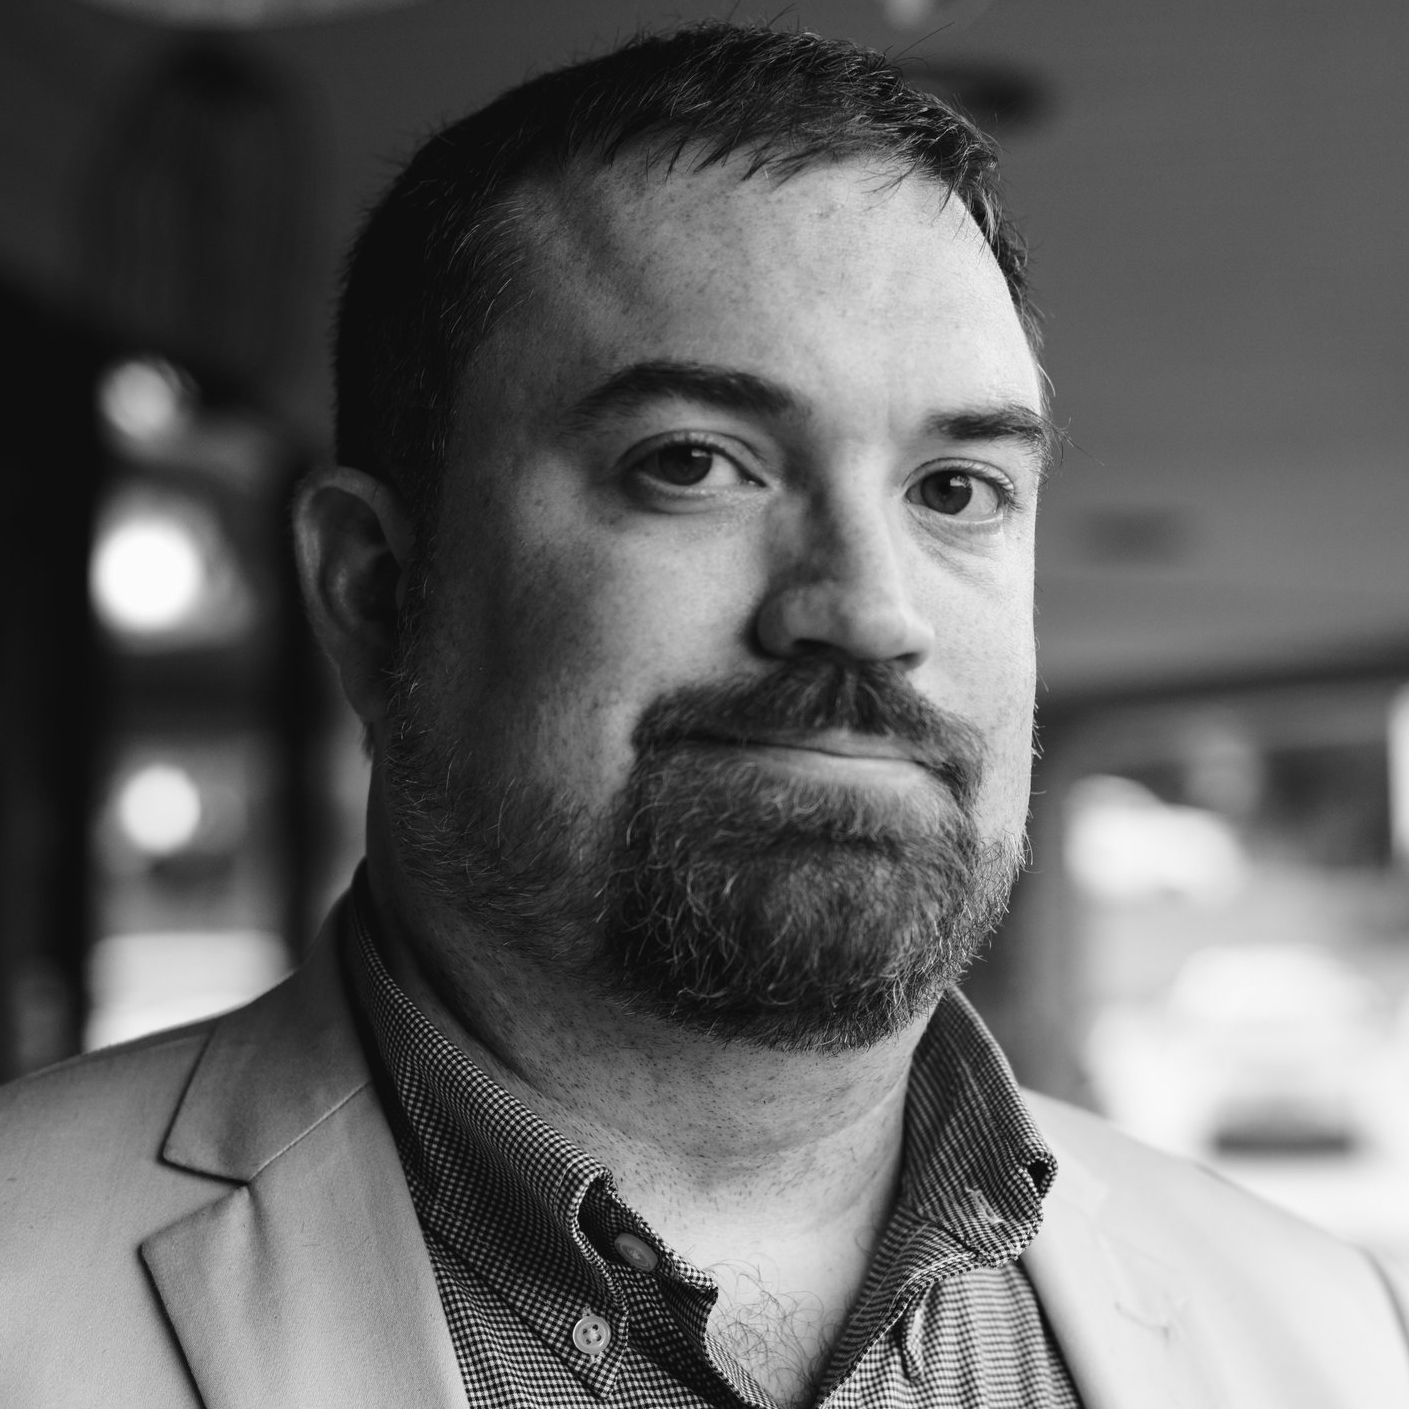 Sean J. Callot, MAPC, MBA - Sean is the CEO and task master for the team. He does some writing, comes up with ideas for production and content, and makes sure the team stays on track. He is also a technical and talent director.